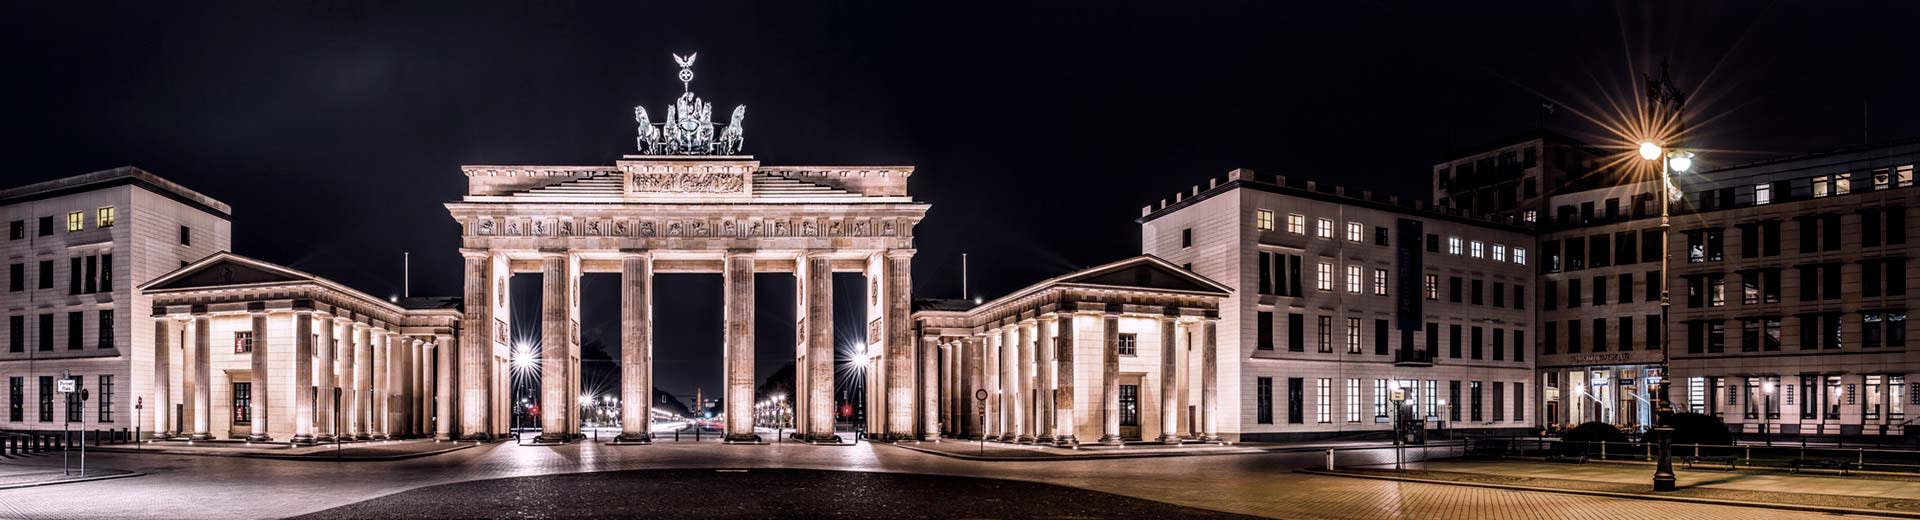 Brandenburg Gate in Berlin at night, with the lights illuminating the structure.